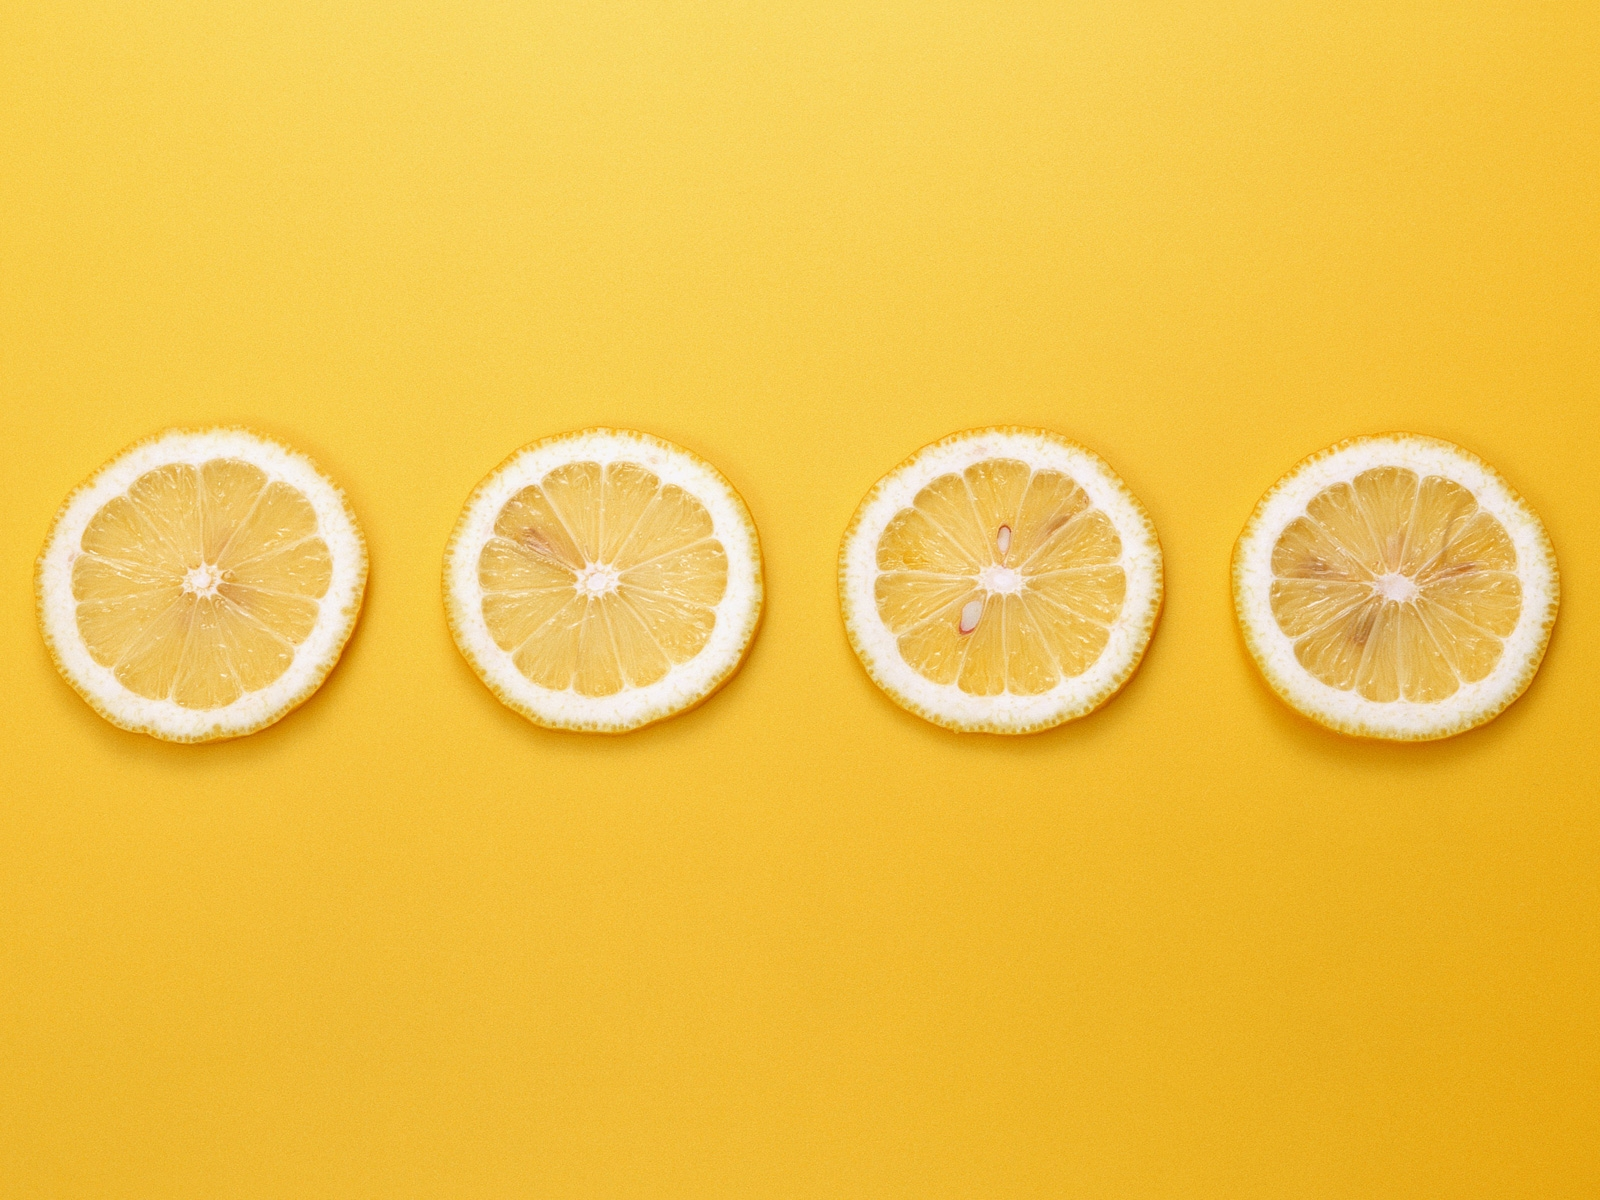 Cute Fruits Wallpaper 4 Lemons in a Line Yellow Background 1600x1200